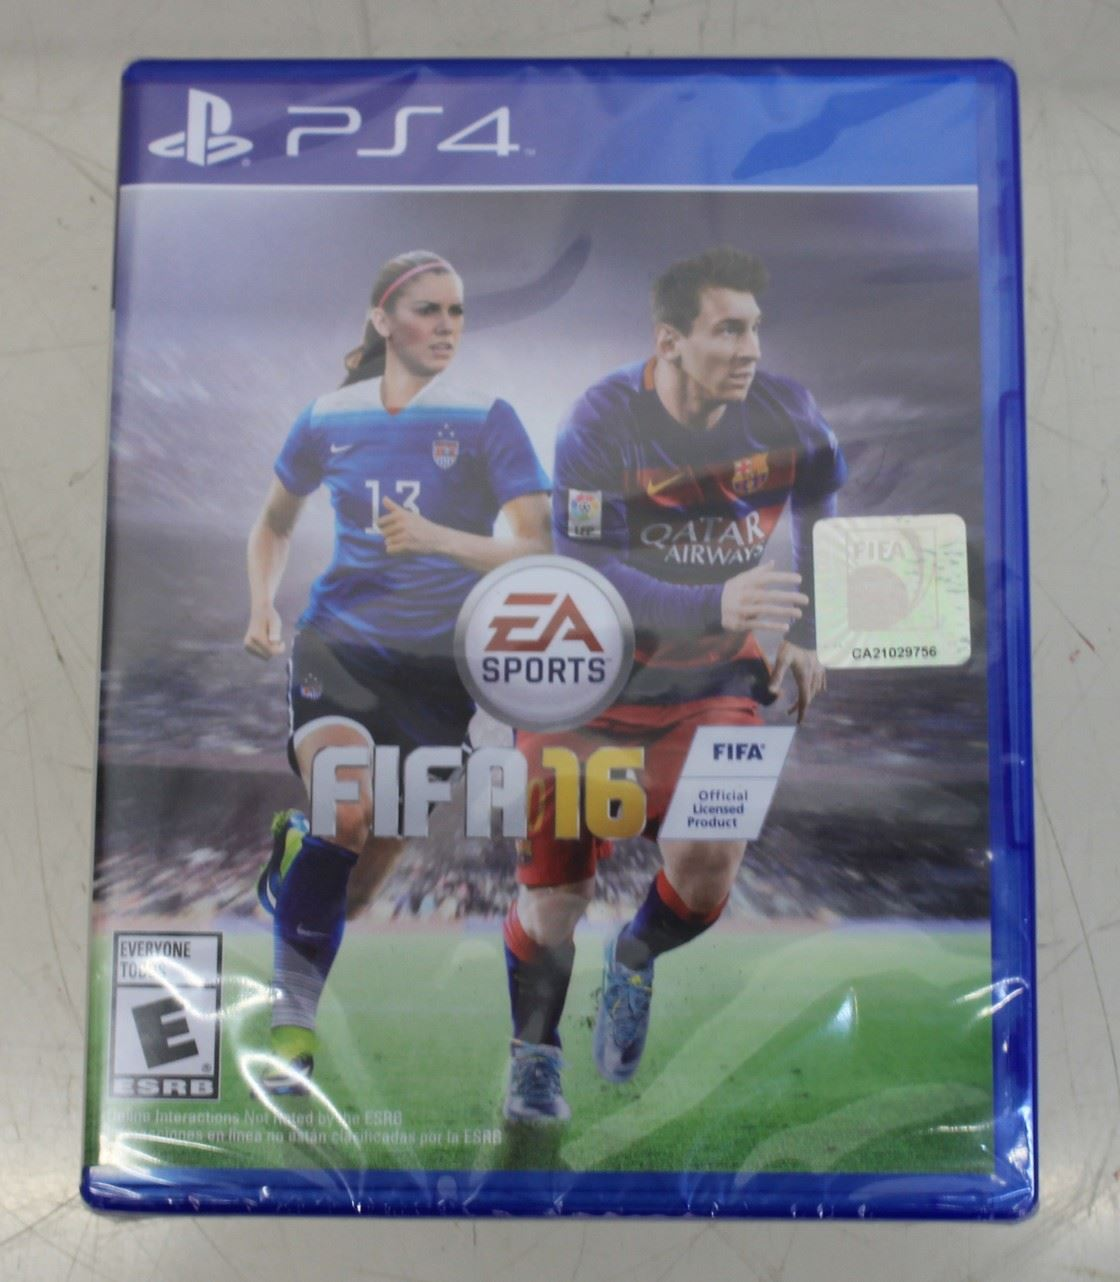 Sports Games For Ps4 : Bnib fifa sony playstation ps ea sports soccer video